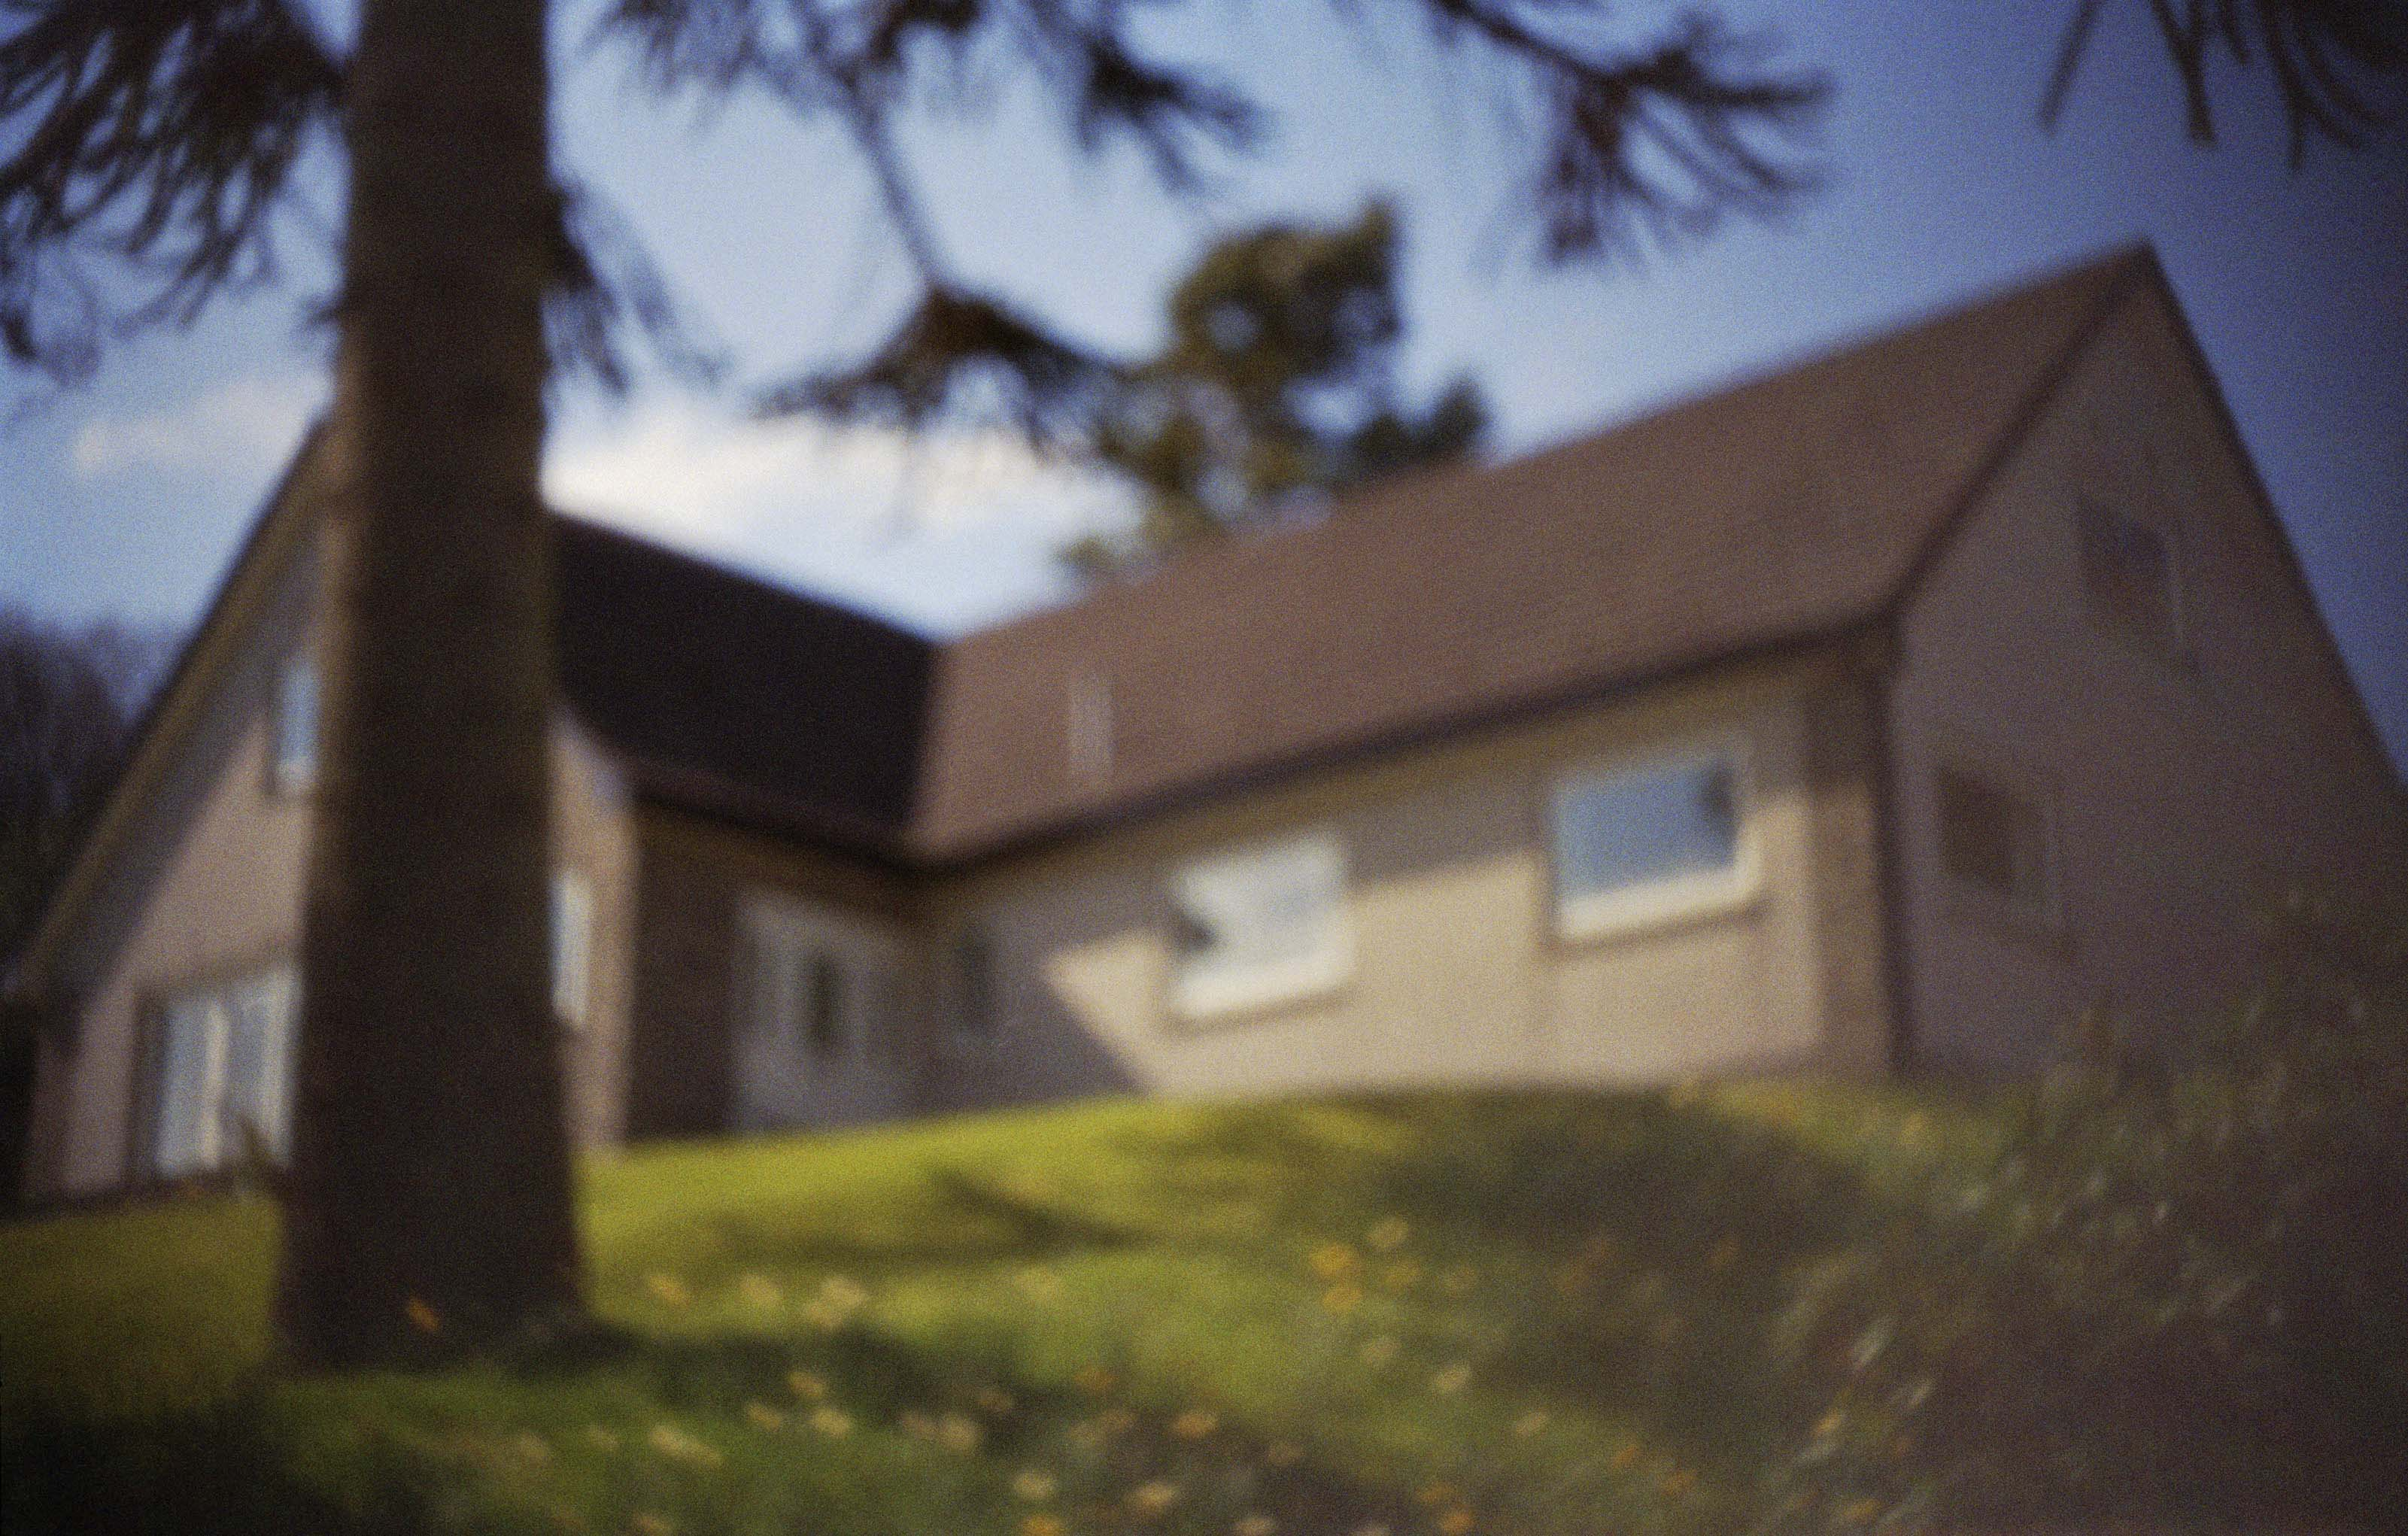 Pinhole photograph of a corner house with a grassy hill and a large tree to the left. Image by Dylan Esposito